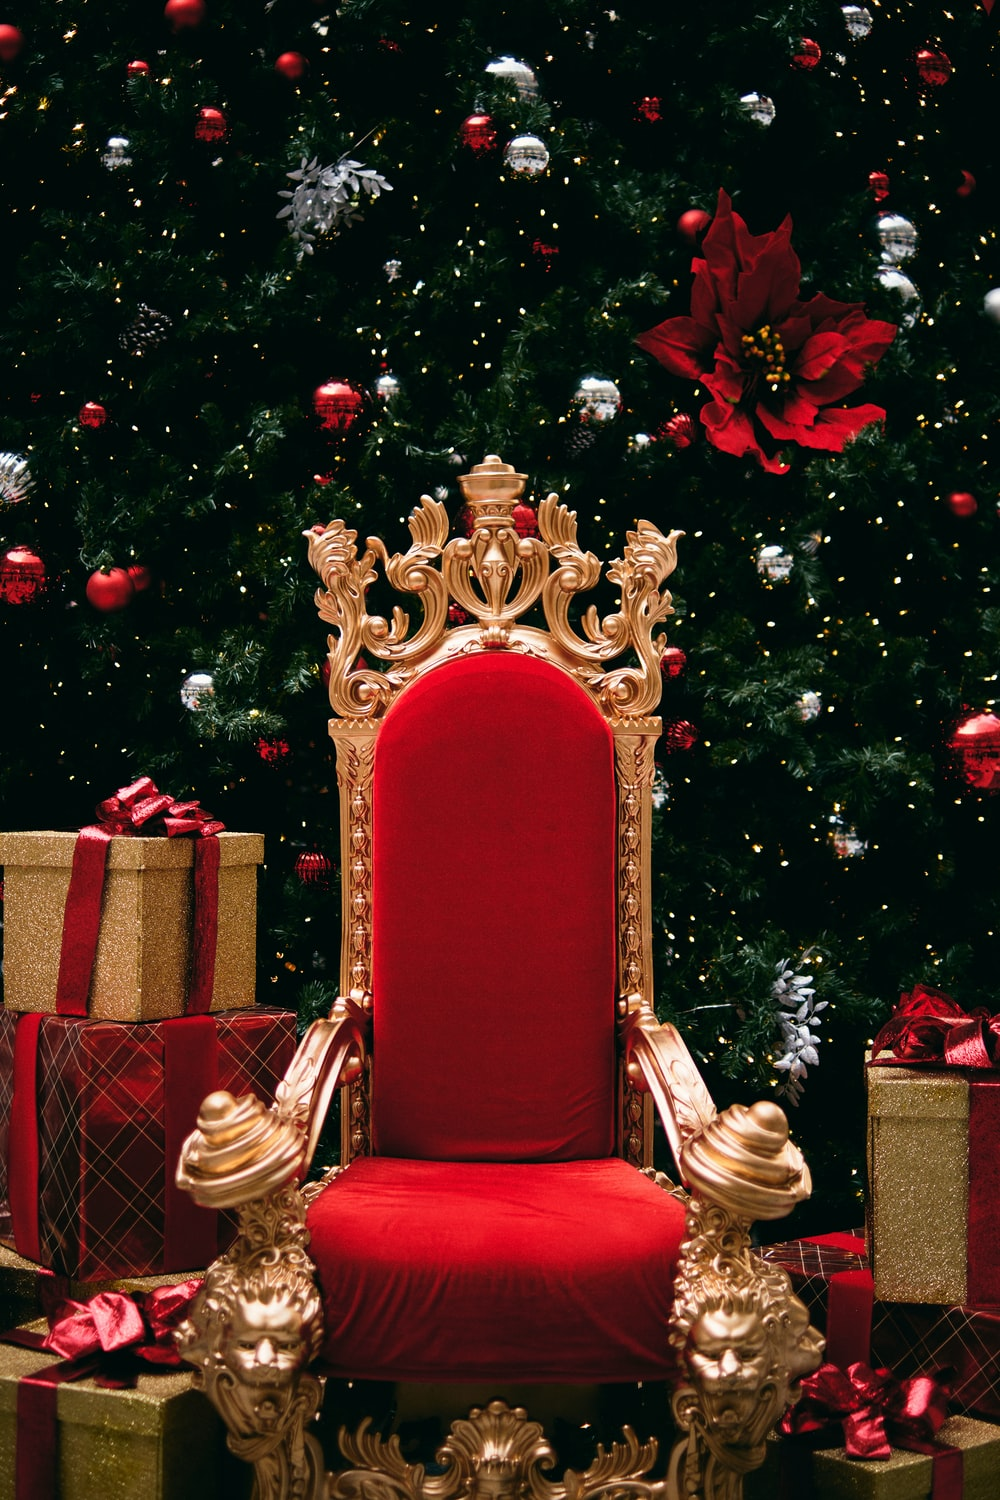 gold and red throne beside gift boxes